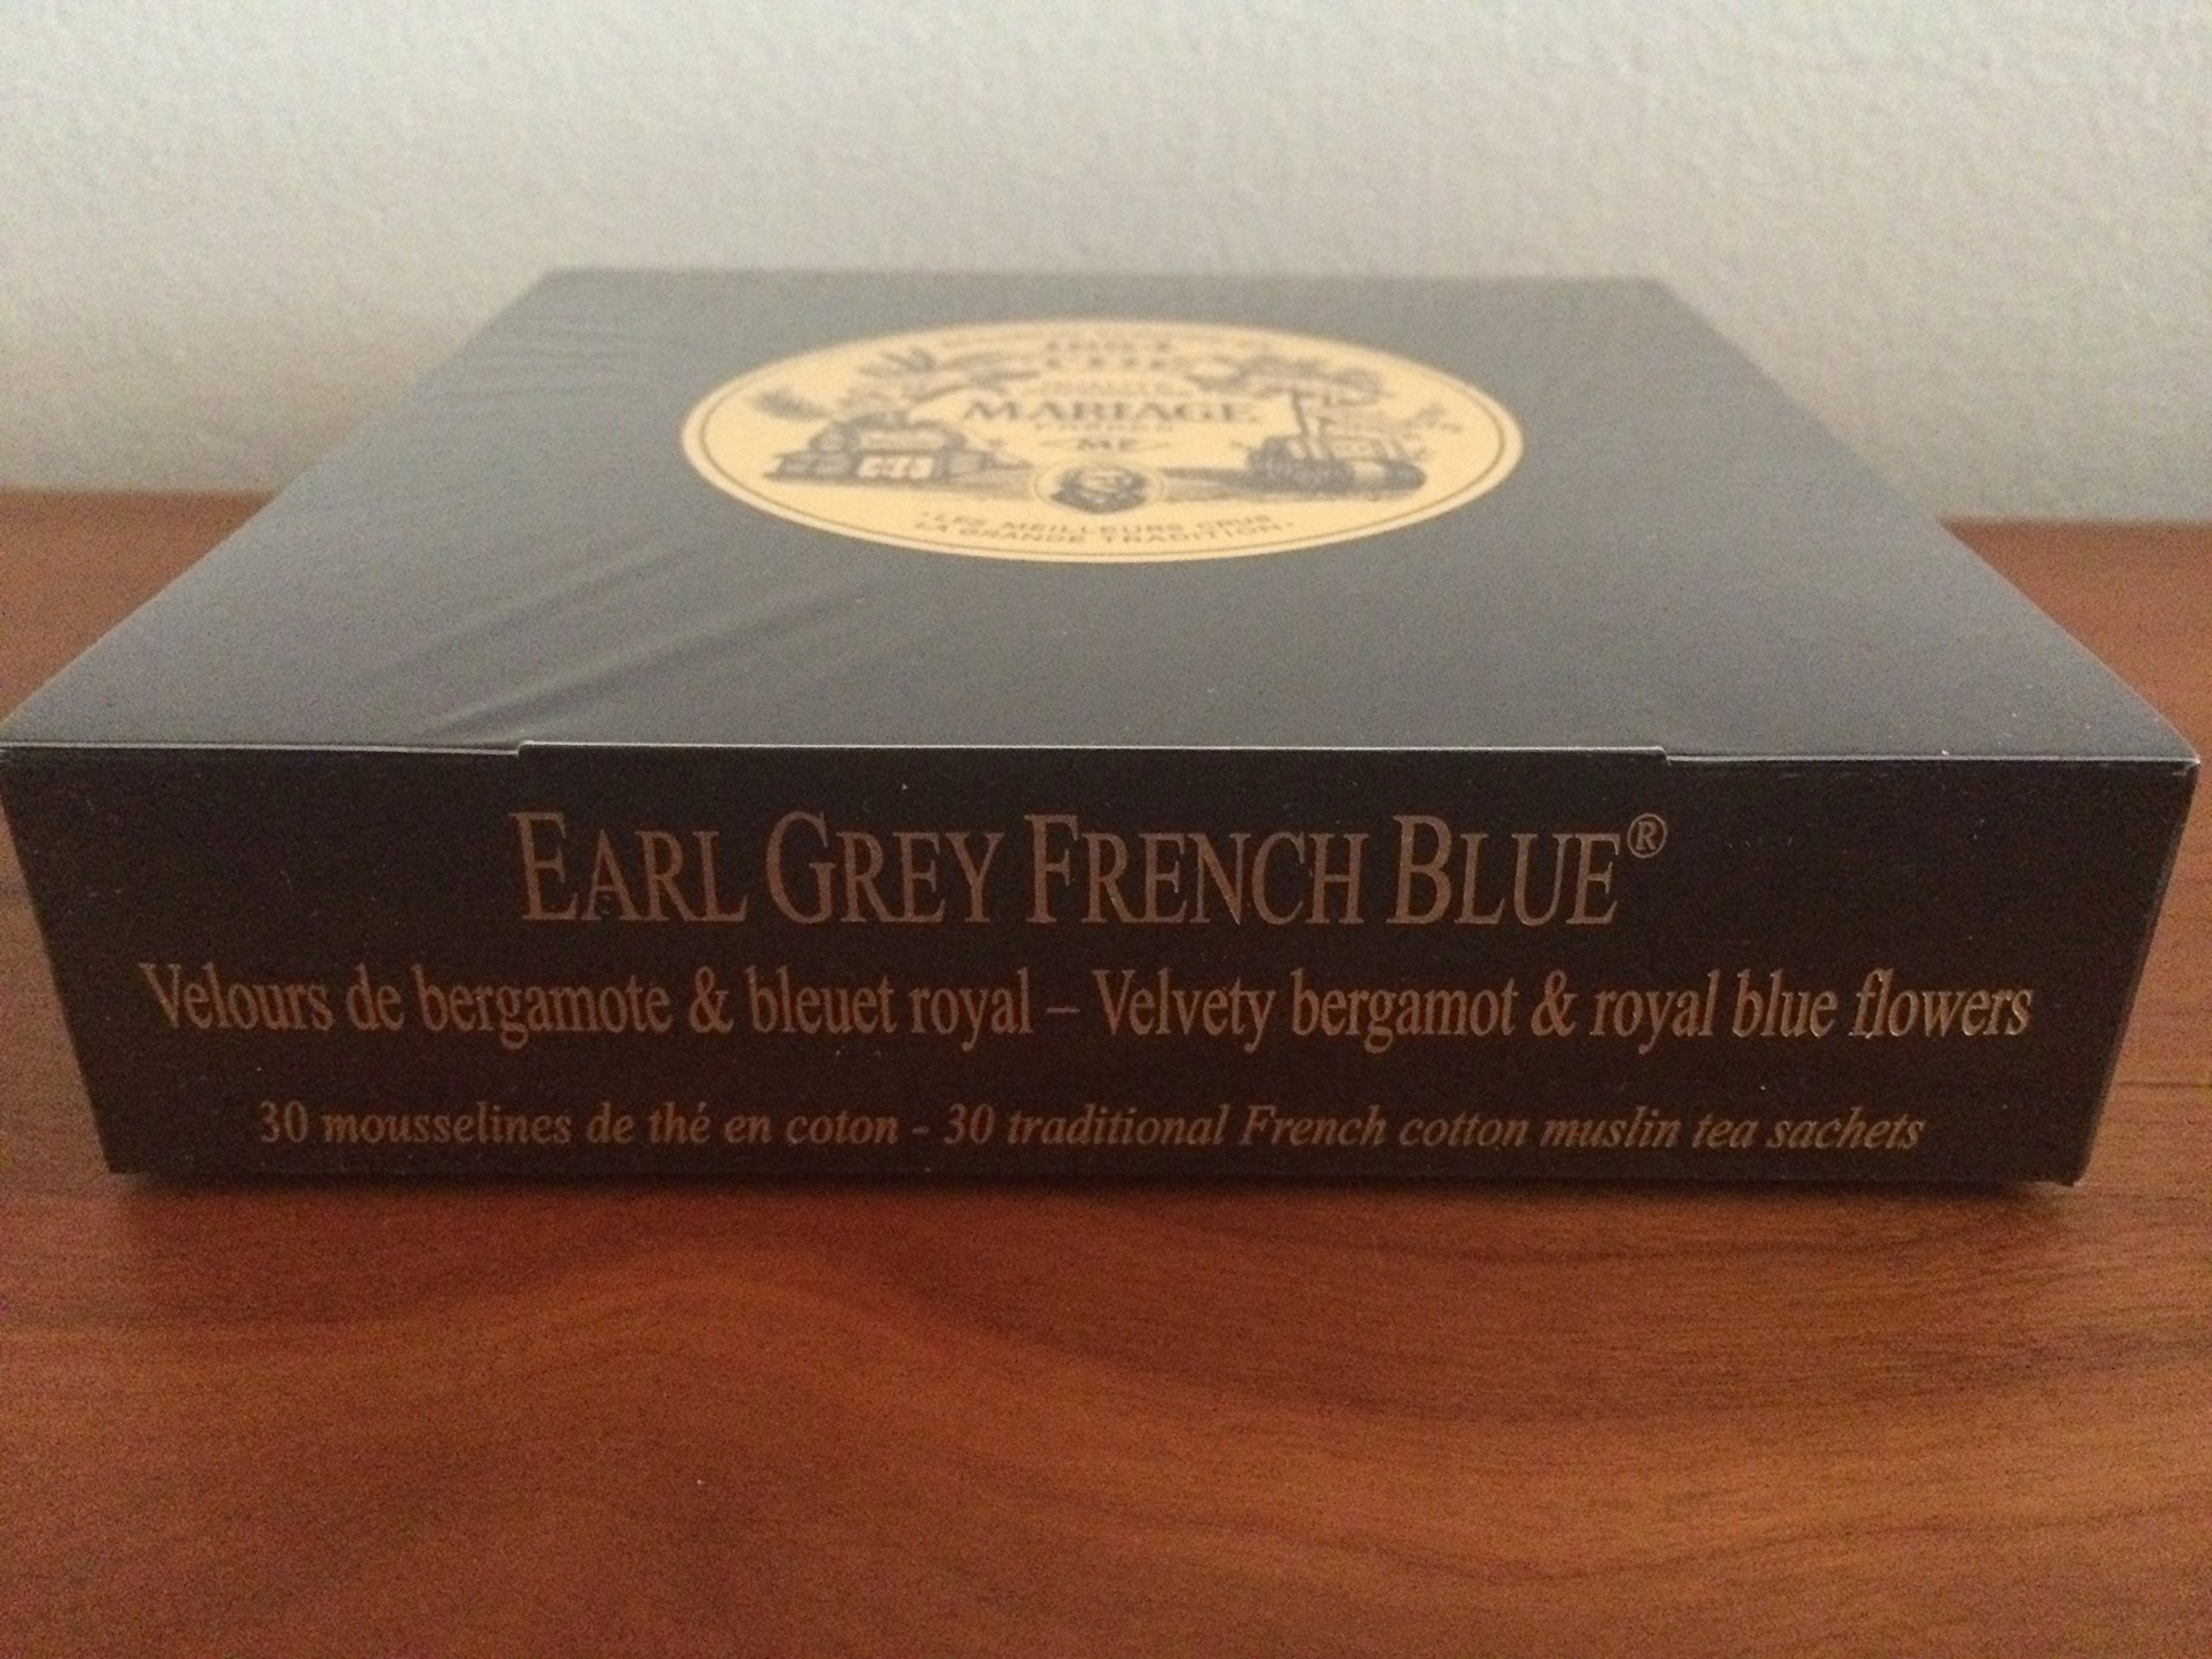 Mariage Frères - EARL GREY FRENCH BLUE® - Box of 30 traditional french muslin tea sachets